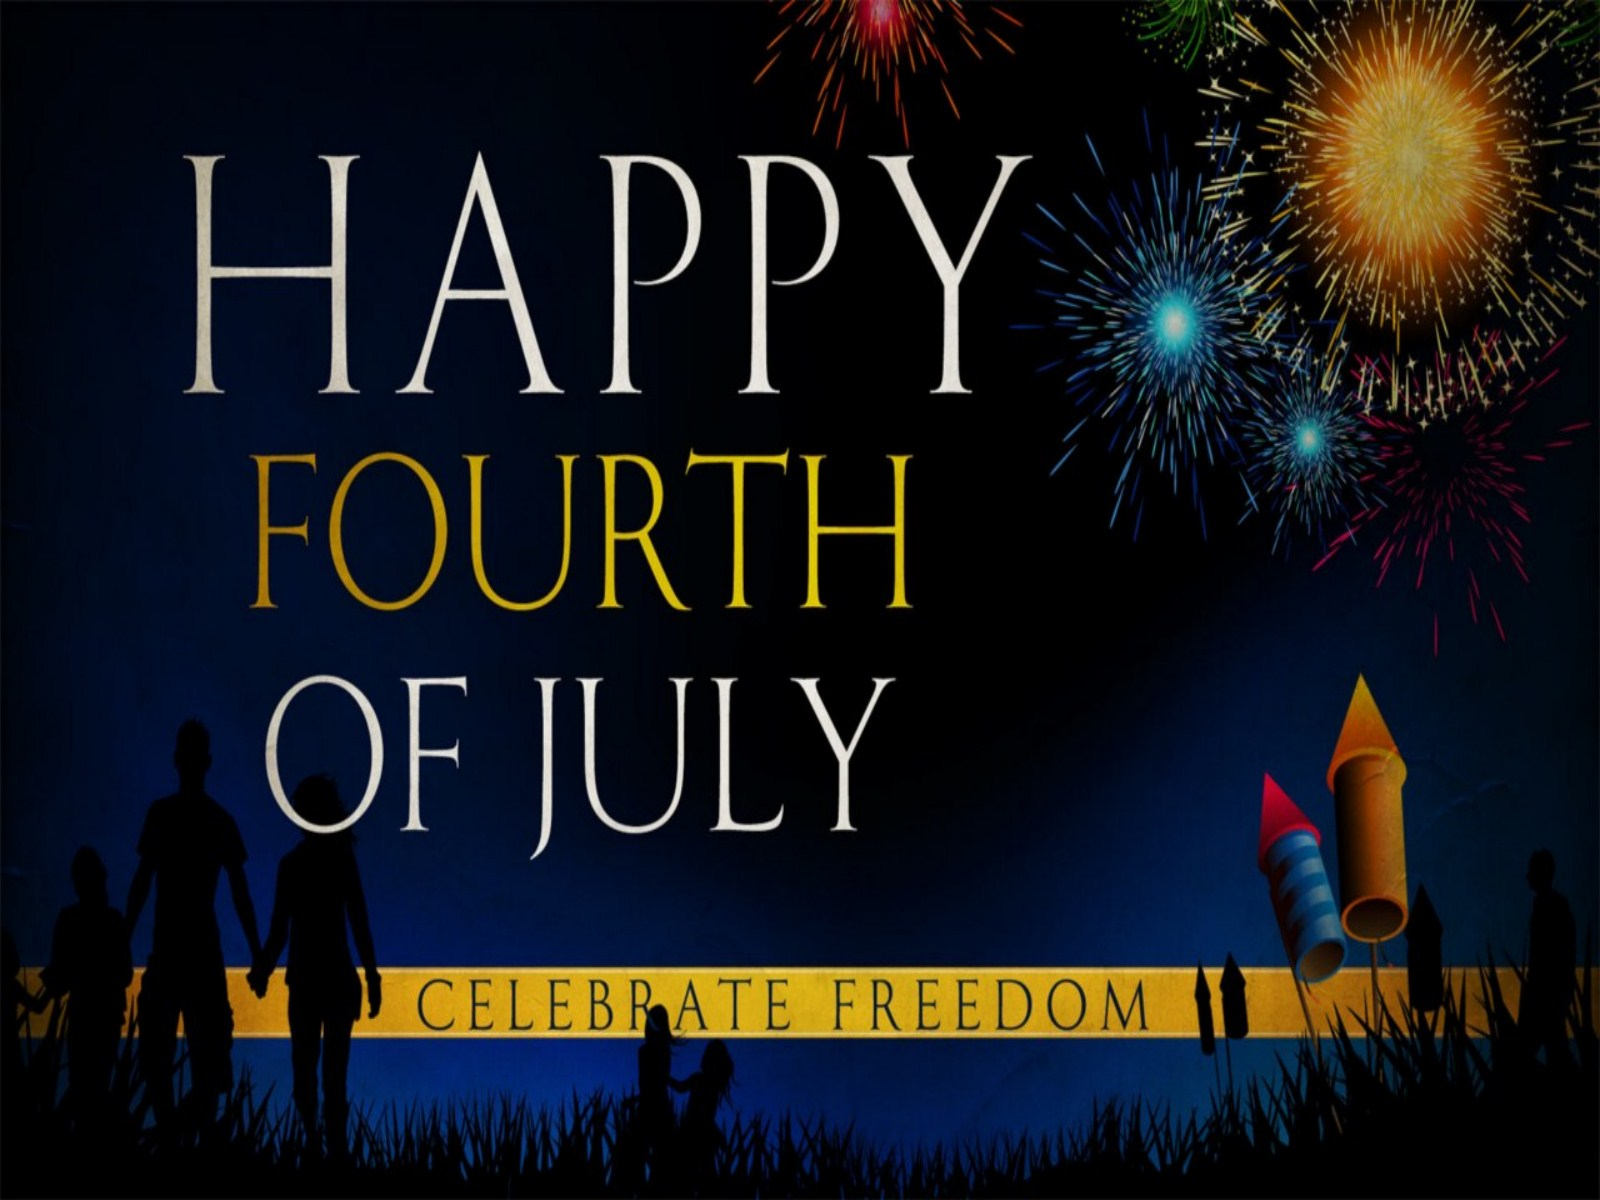 4th of july wallpaper which is under the 4th of july wallpapers 1600x1200